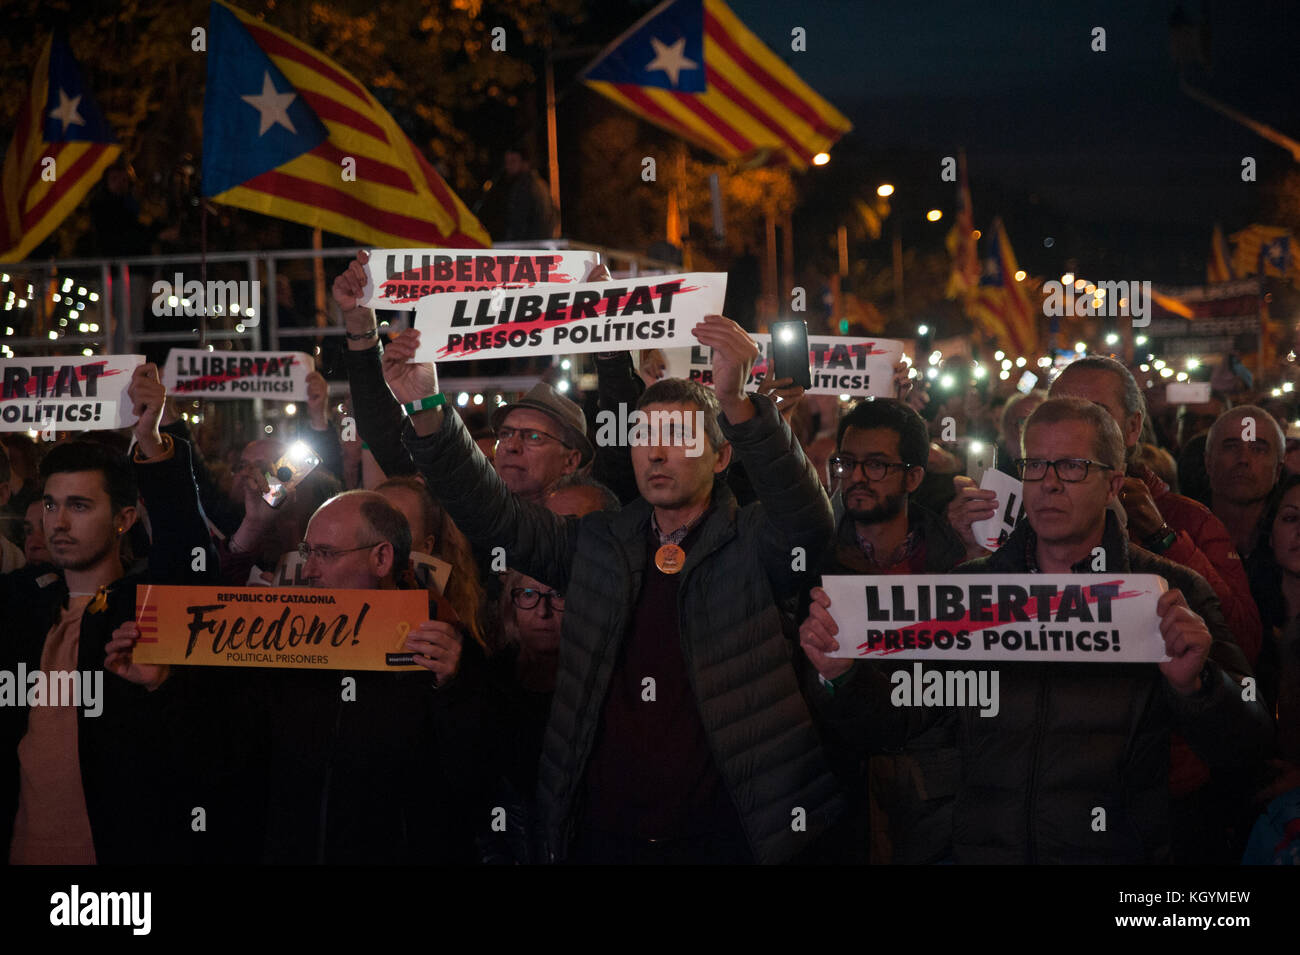 Barcelona, Spain. 11th Nov. 2017.   Independence movement associations and political parties called for a march to protest against the prison detentions of the Ousted Catalan Government. Credit: Charlie Perez/Alamy live News Stock Photo